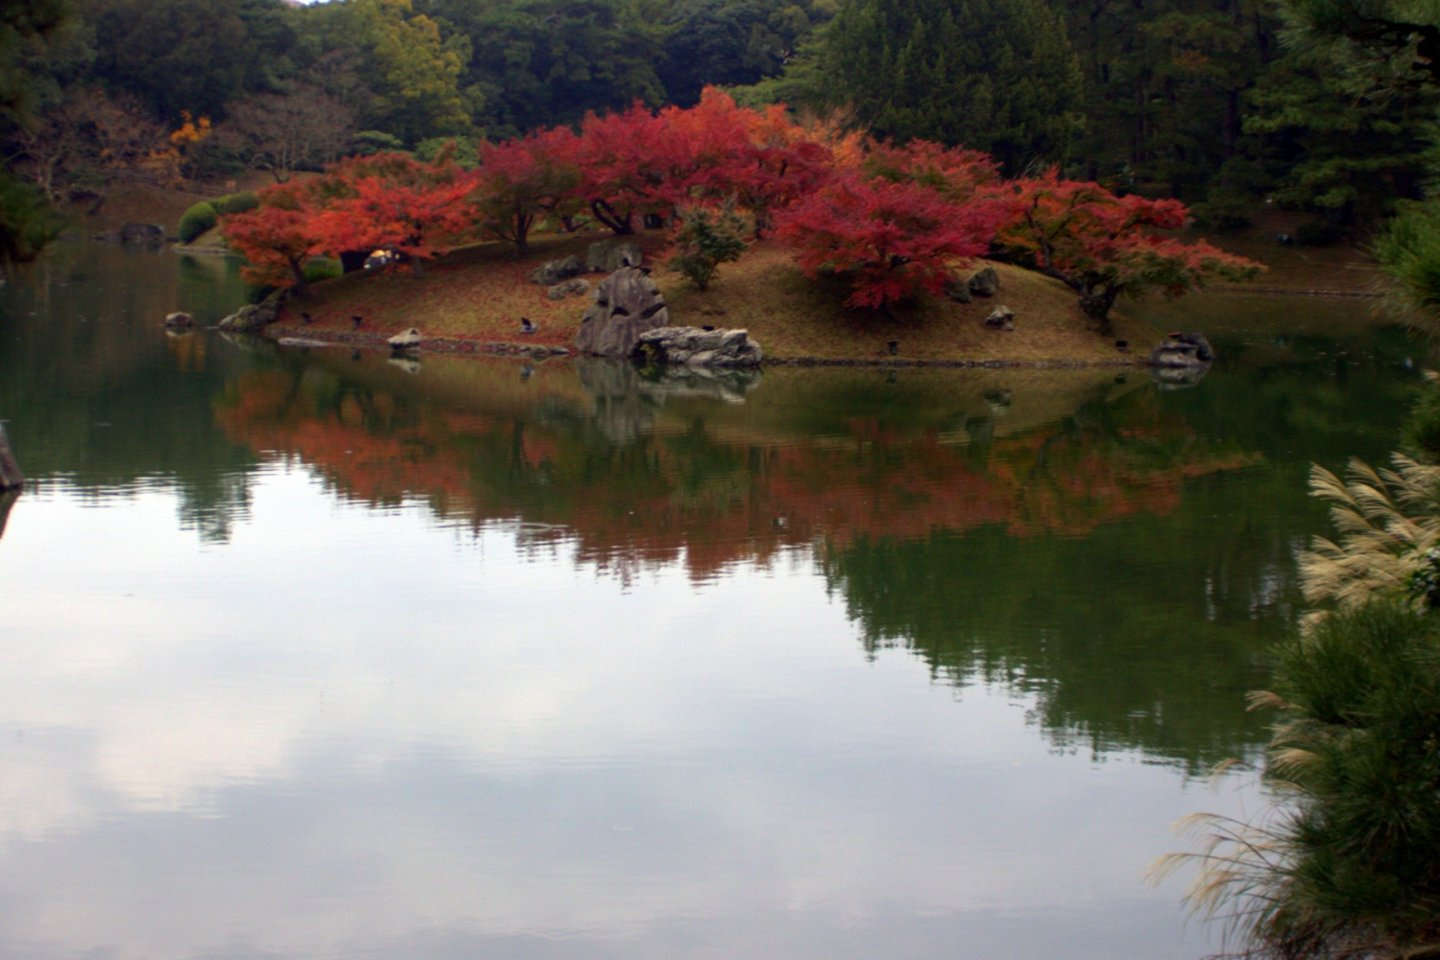 No matter the time of year one visits, Ritsurin Park affords the visitor nearly endless photo opportunities